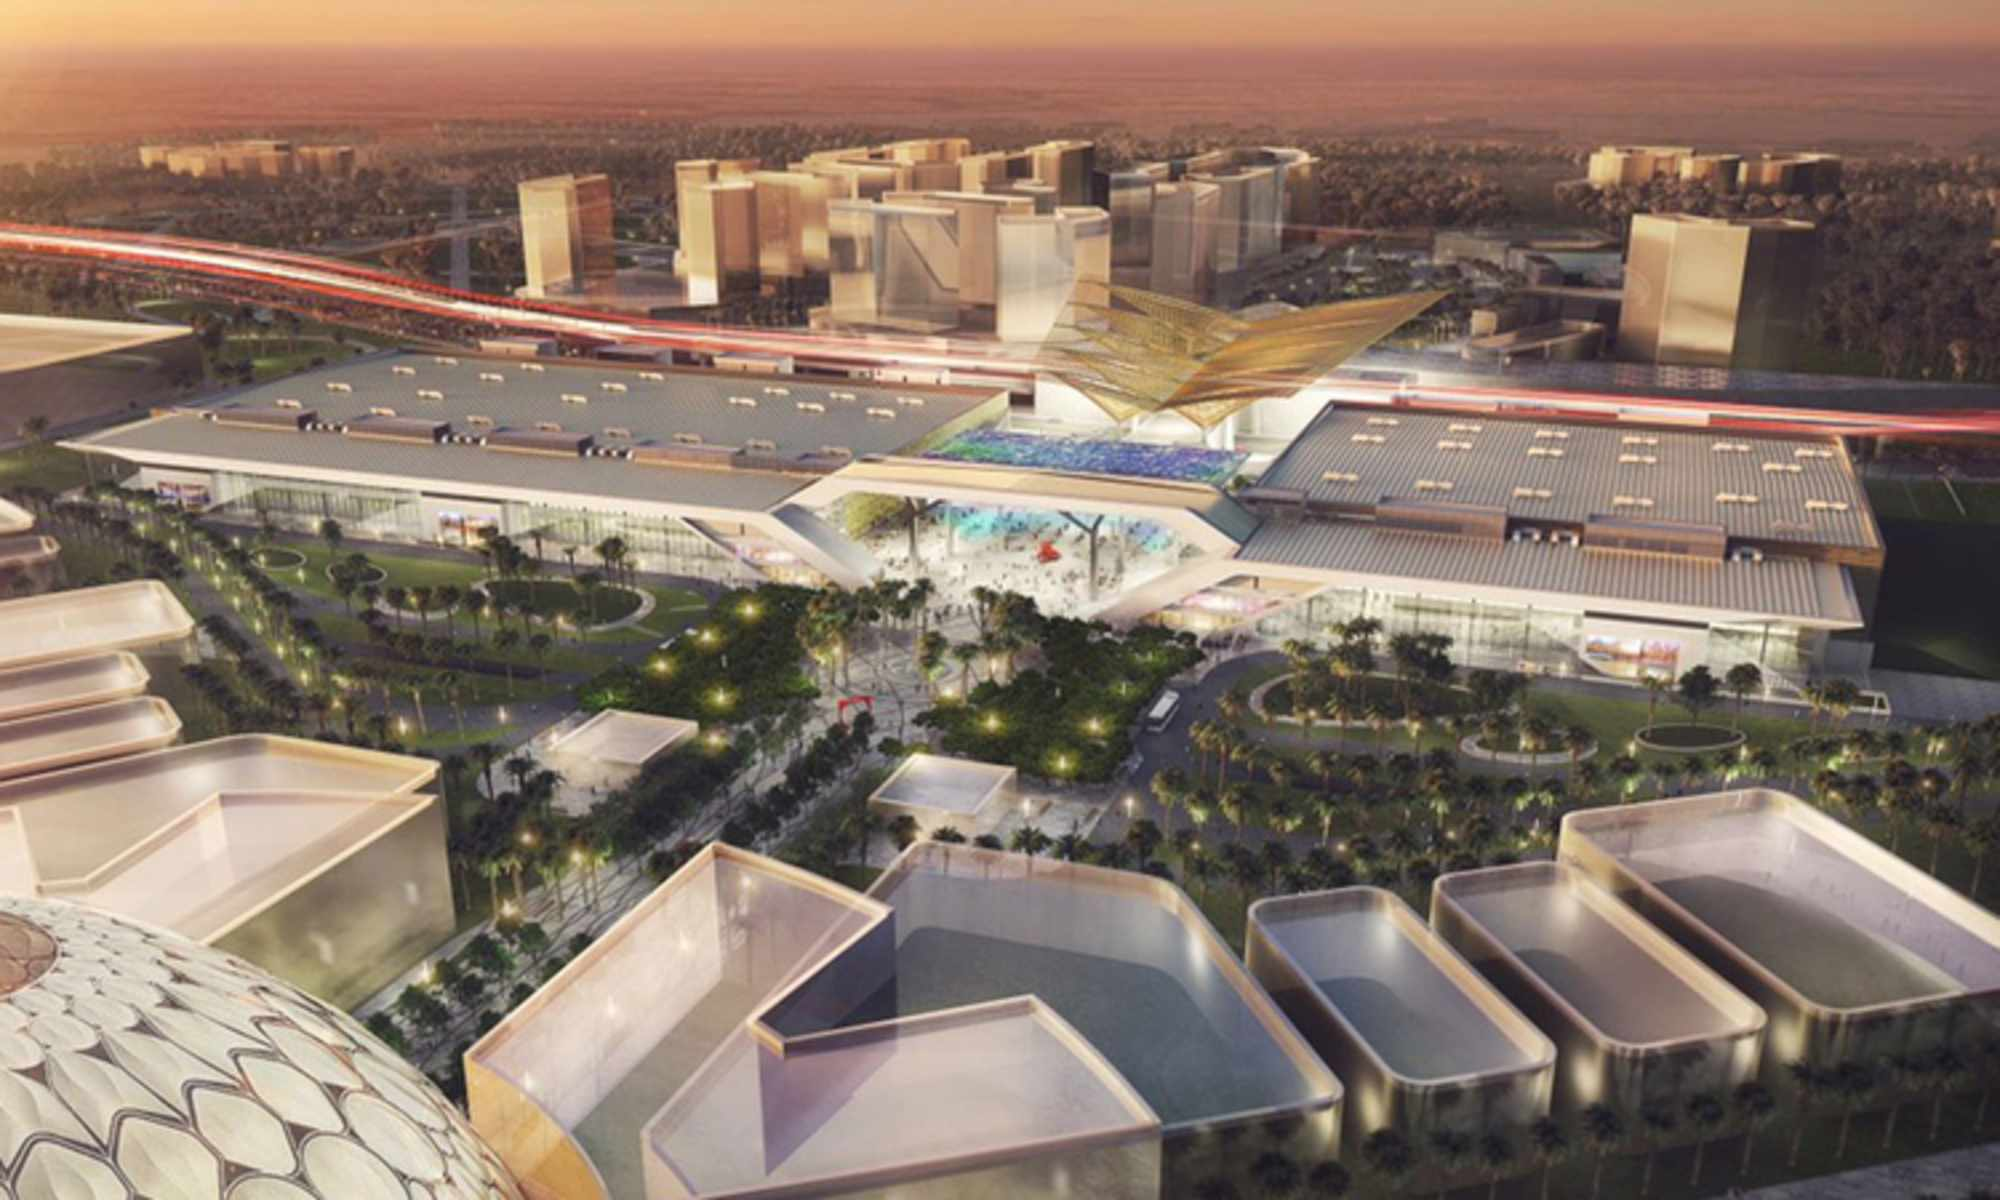 Dubai  Exhibition Centre at Expo 2020